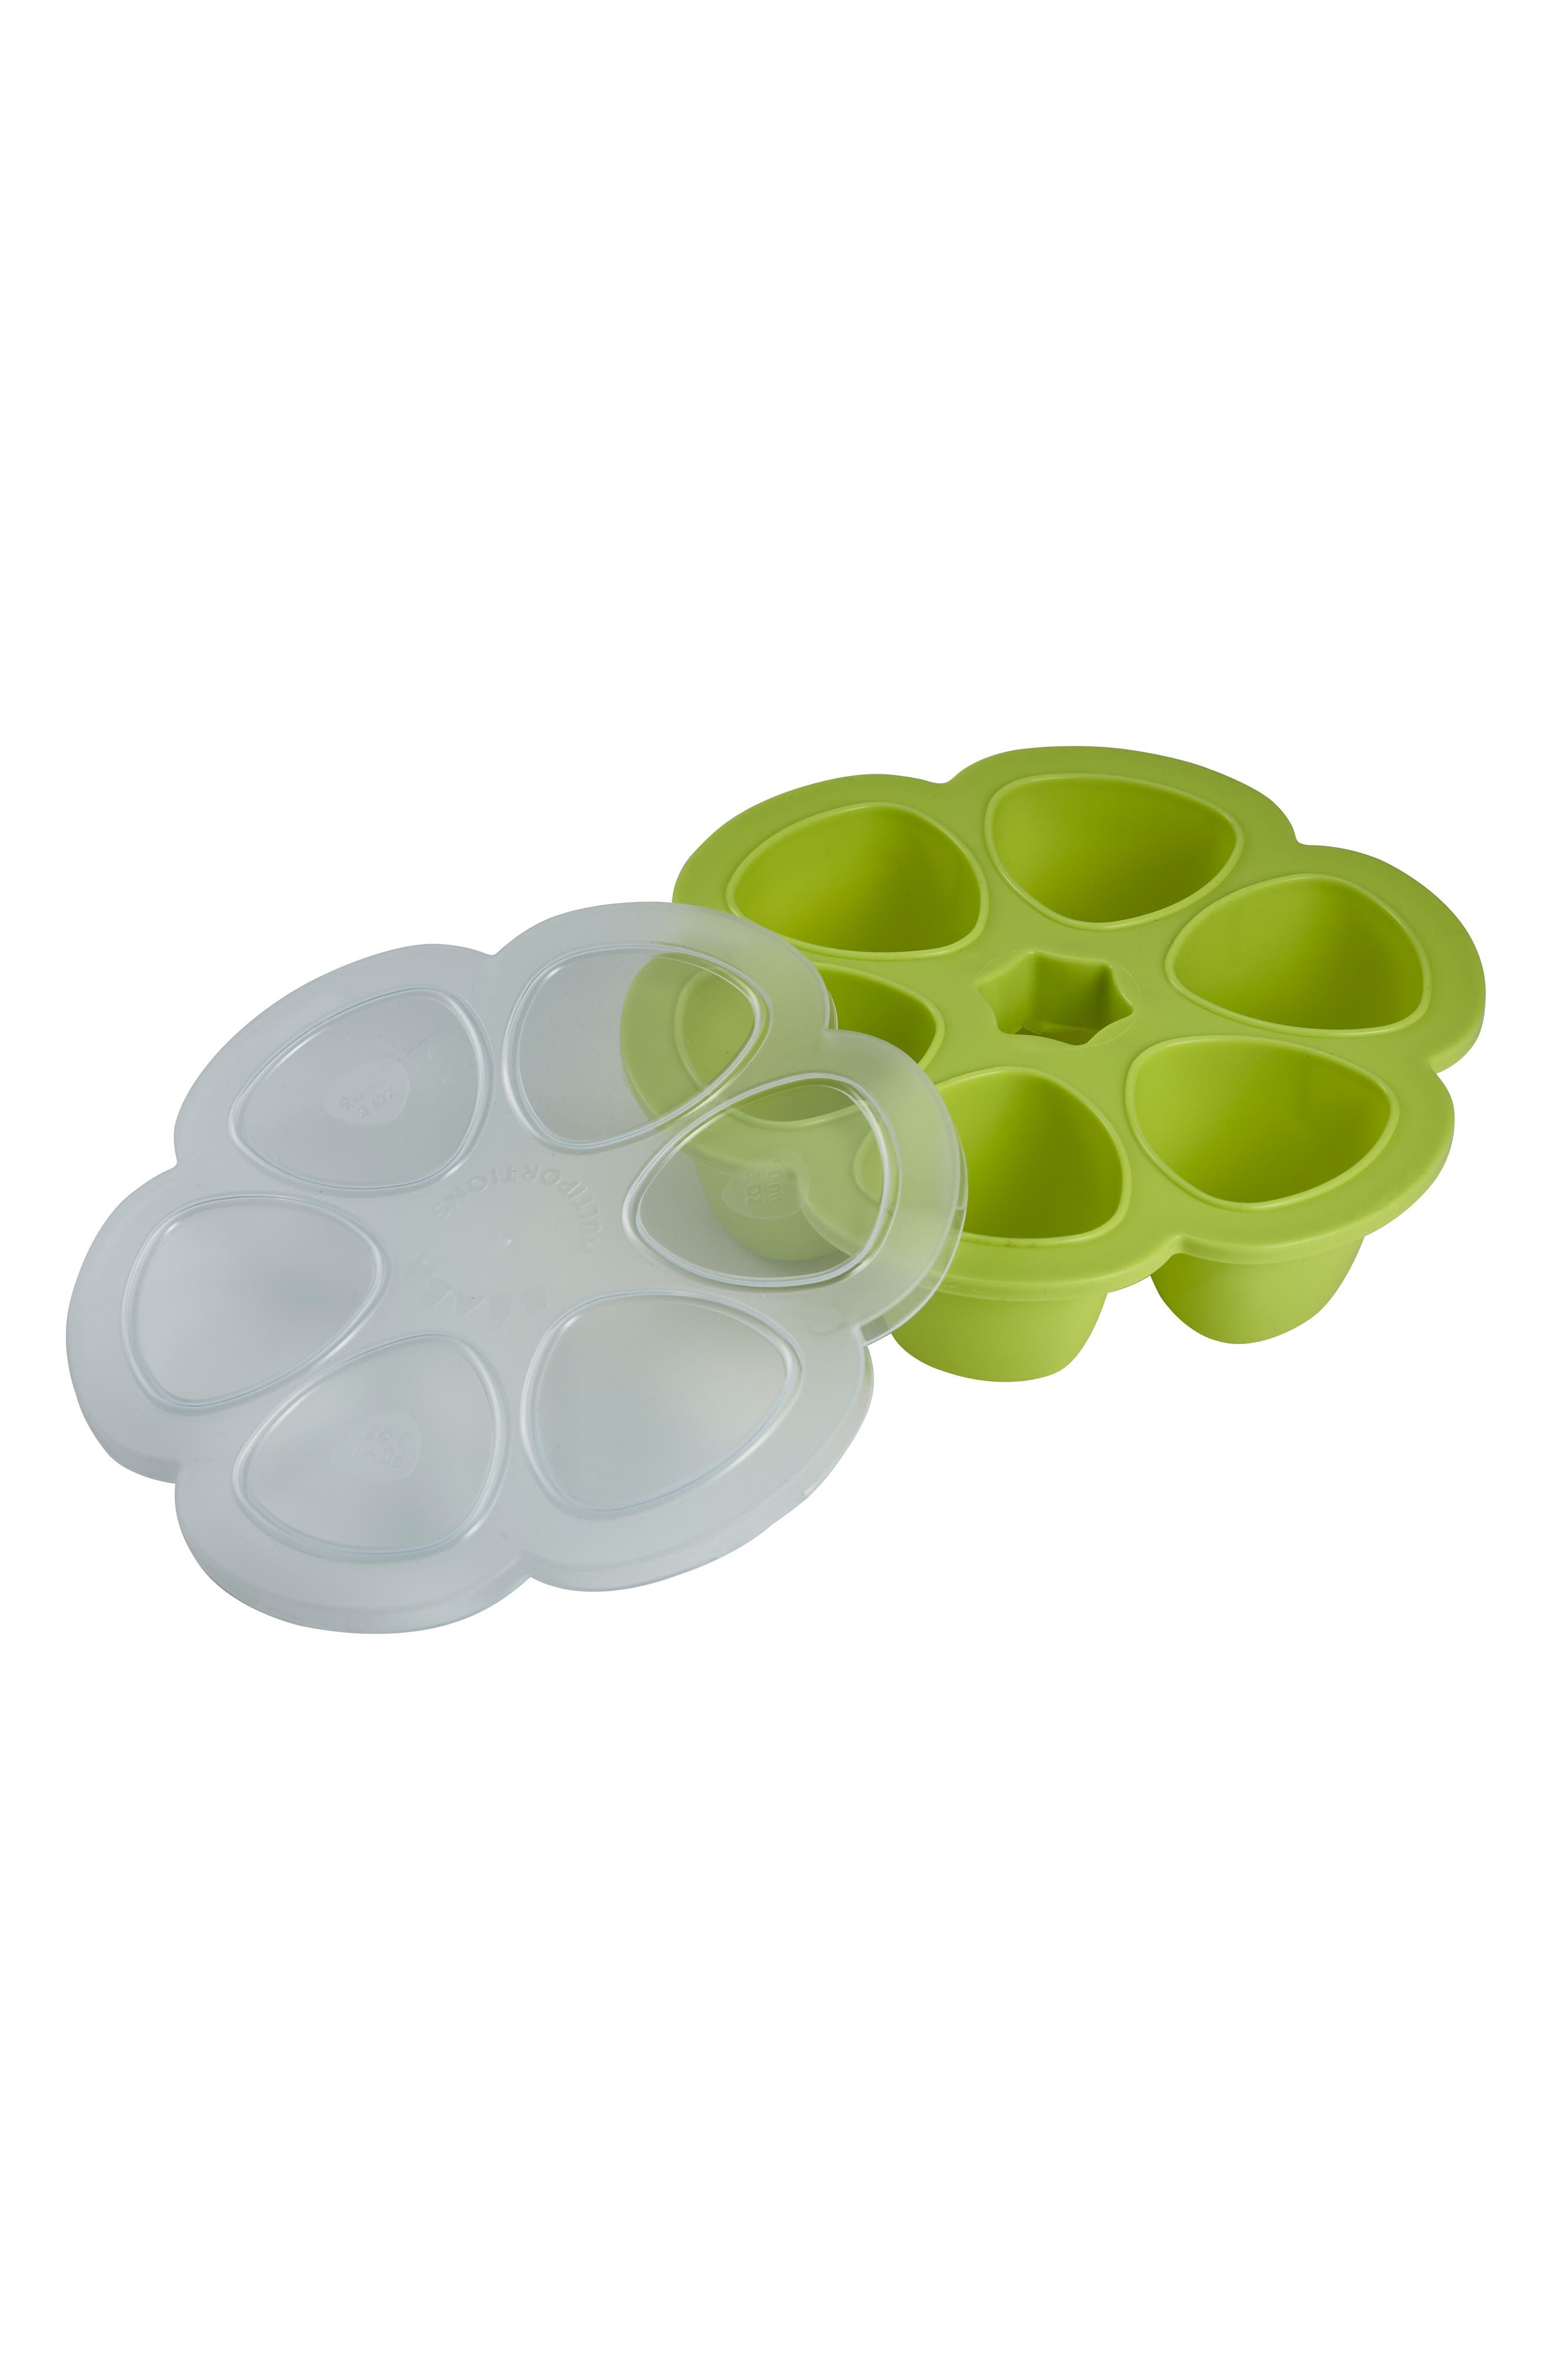 'Multiportions<sup>™</sup>' Silicone 5 oz. Food Cup Tray,                             Alternate thumbnail 4, color,                             Neon